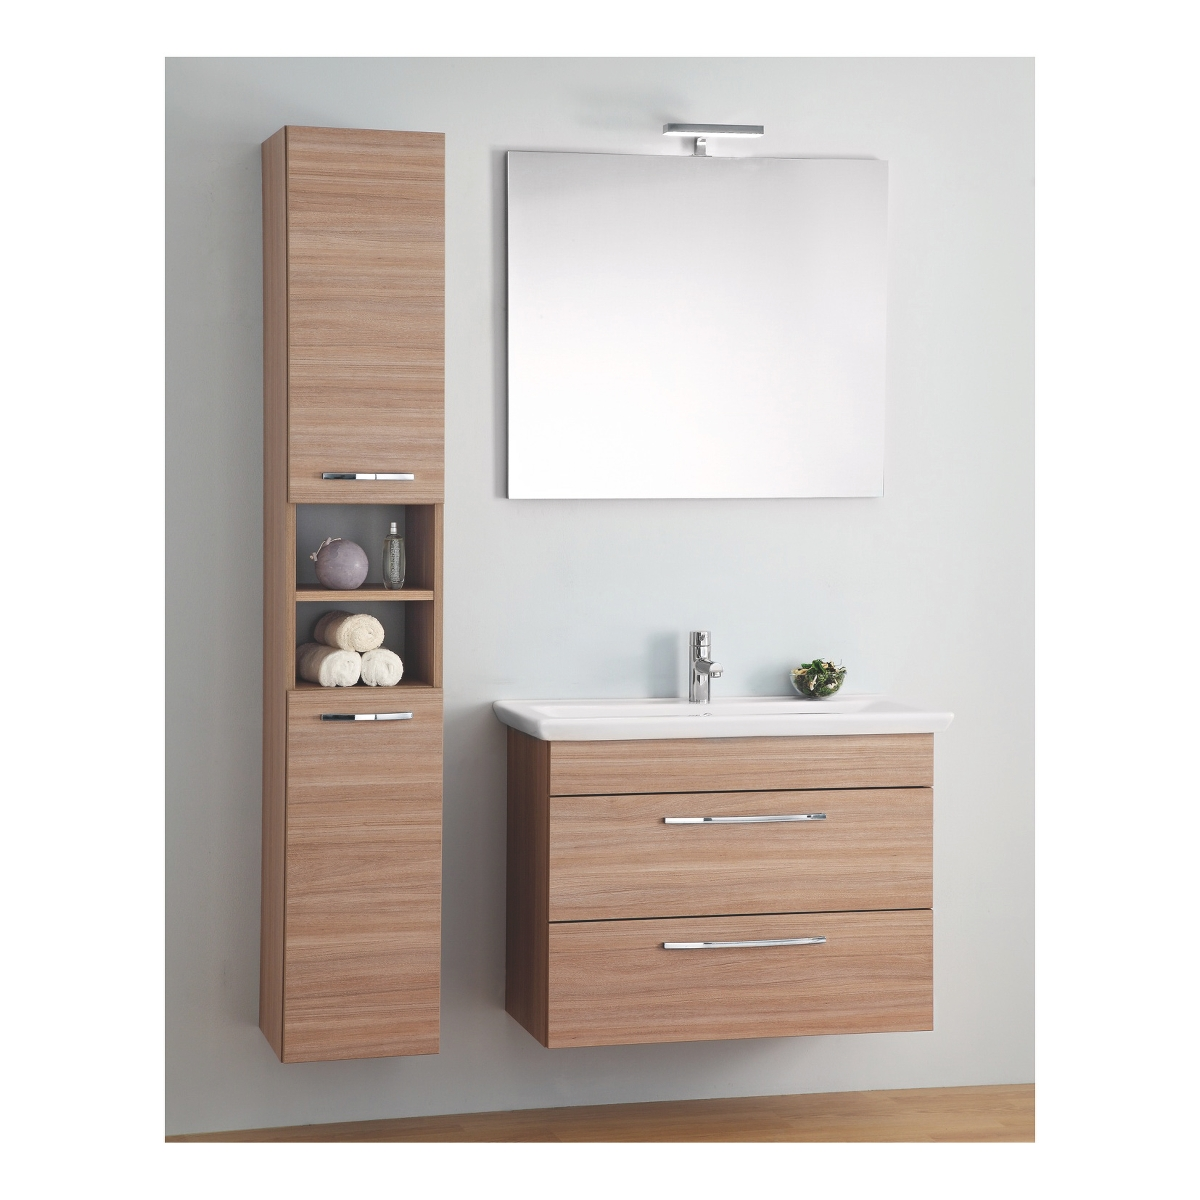 Leroy merlin mobile bagno gi 115 mobili bagno bathrooms pinterest wood bathroom and - Pensile bagno leroy merlin ...